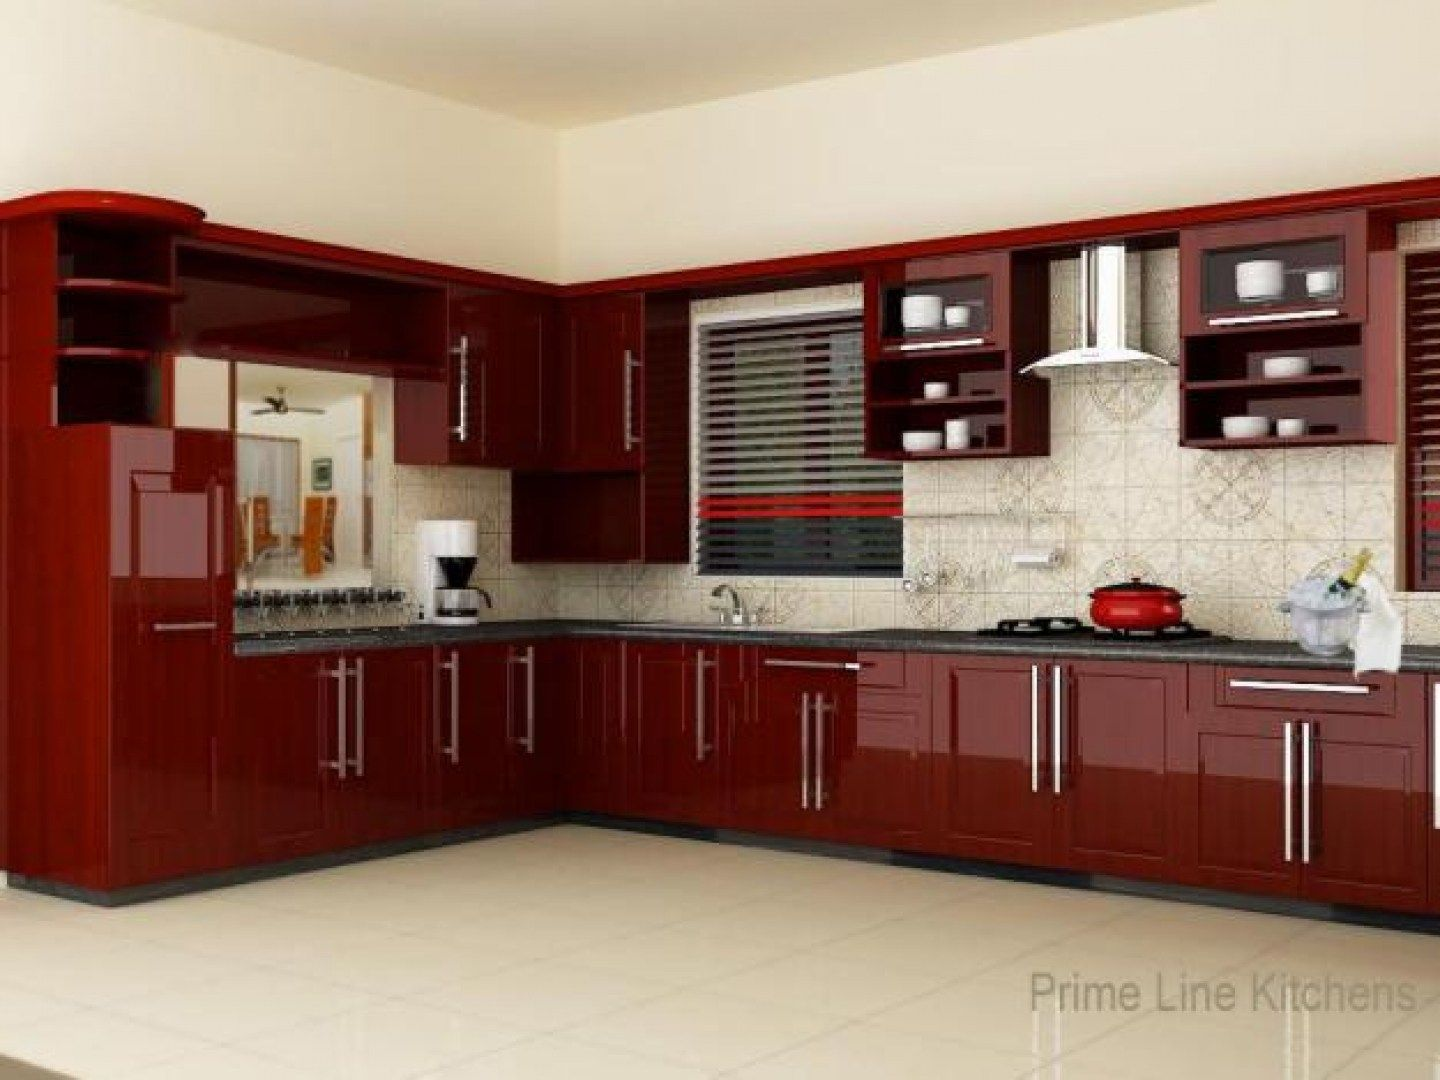 Kitchen design ideas kitchen woodwork designs hyderabad for House kitchen model